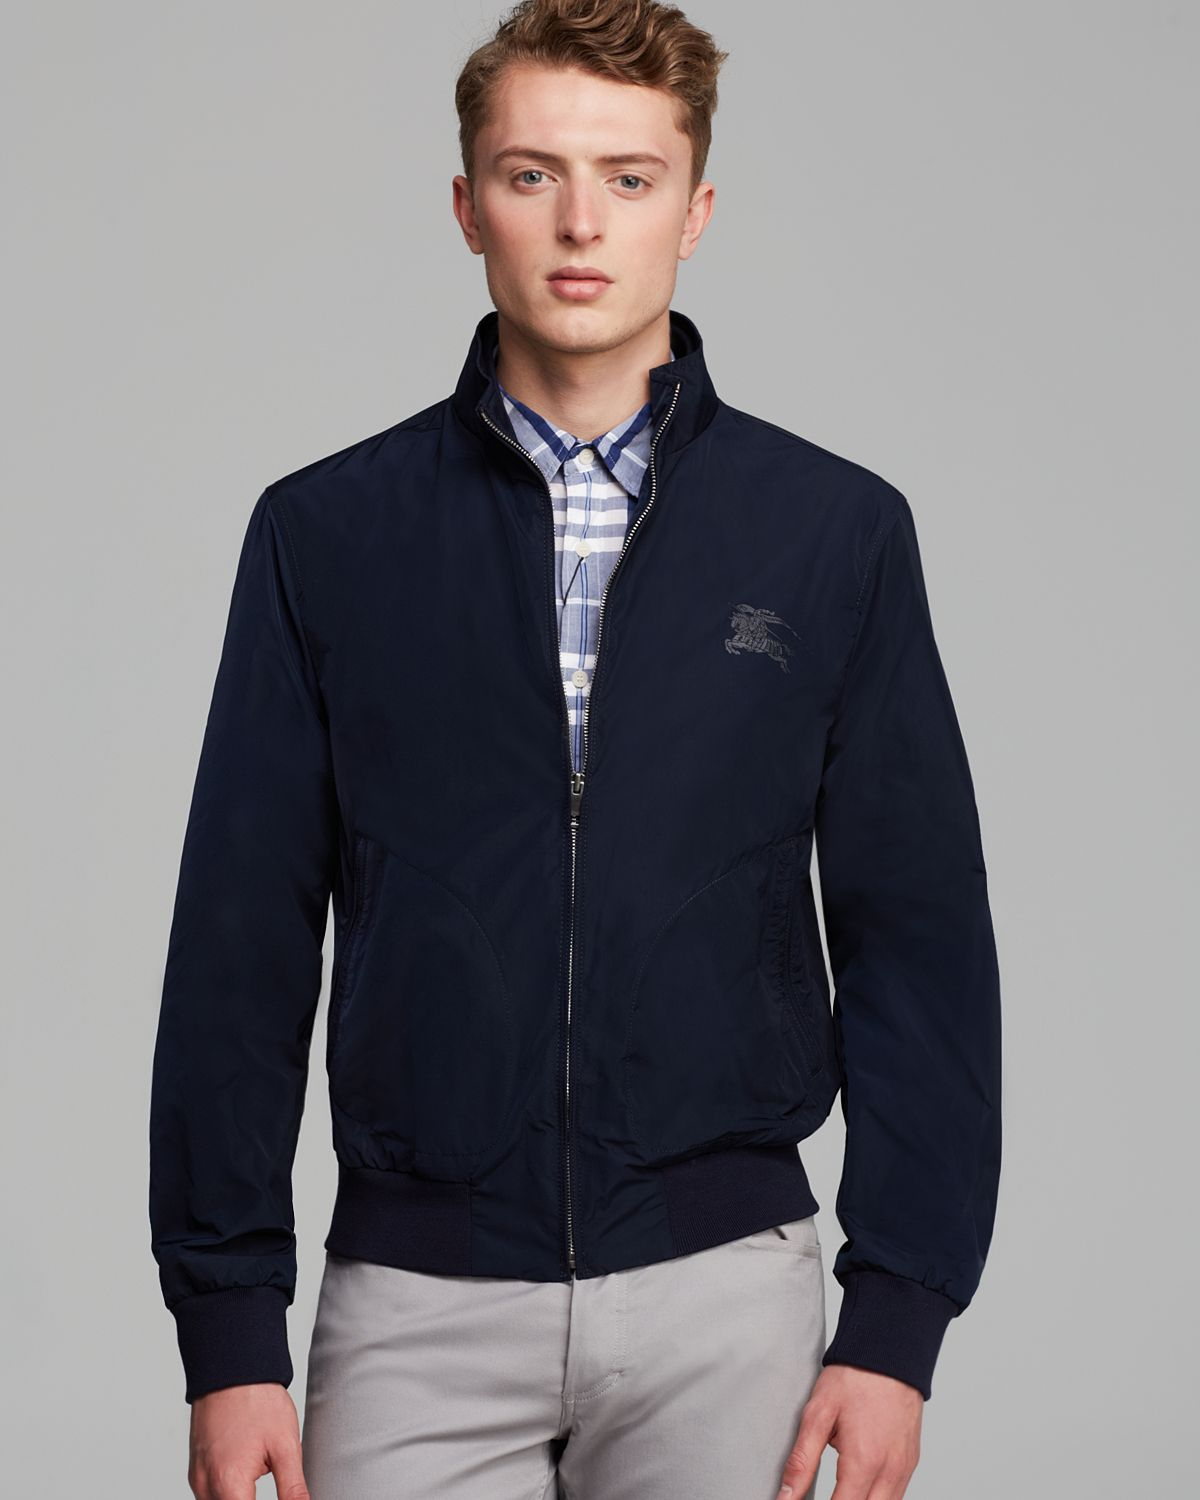 Shop from a wide selection of mens jackets and coats on lidarwindtechnolog.ga Free shipping and free returns on eligible items.